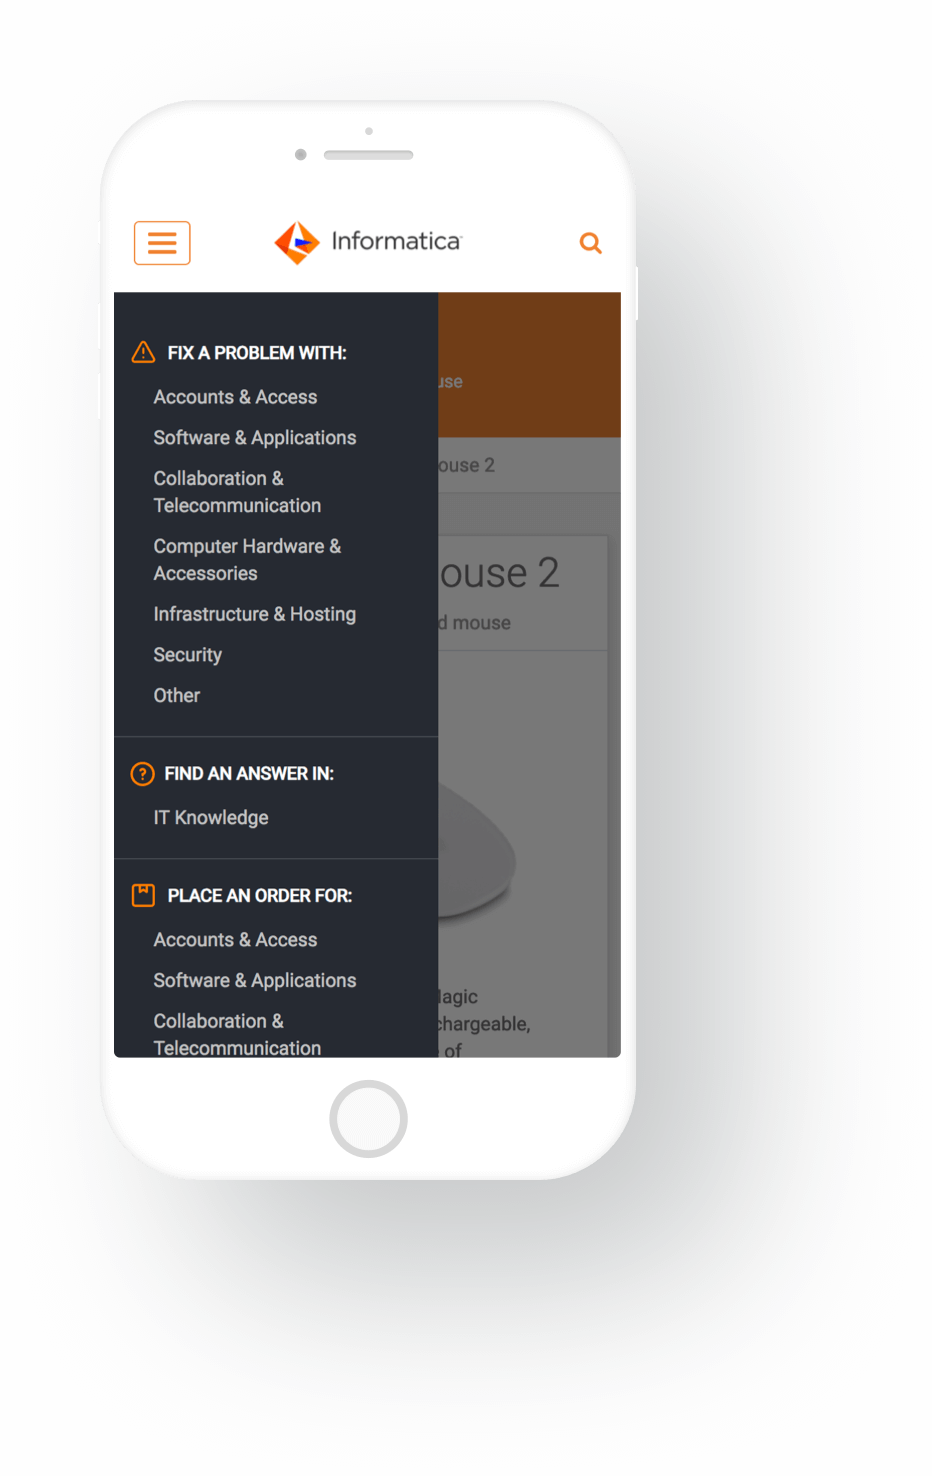 Mobile Menu Screenshot of Informatica ServiceNow Service Portal